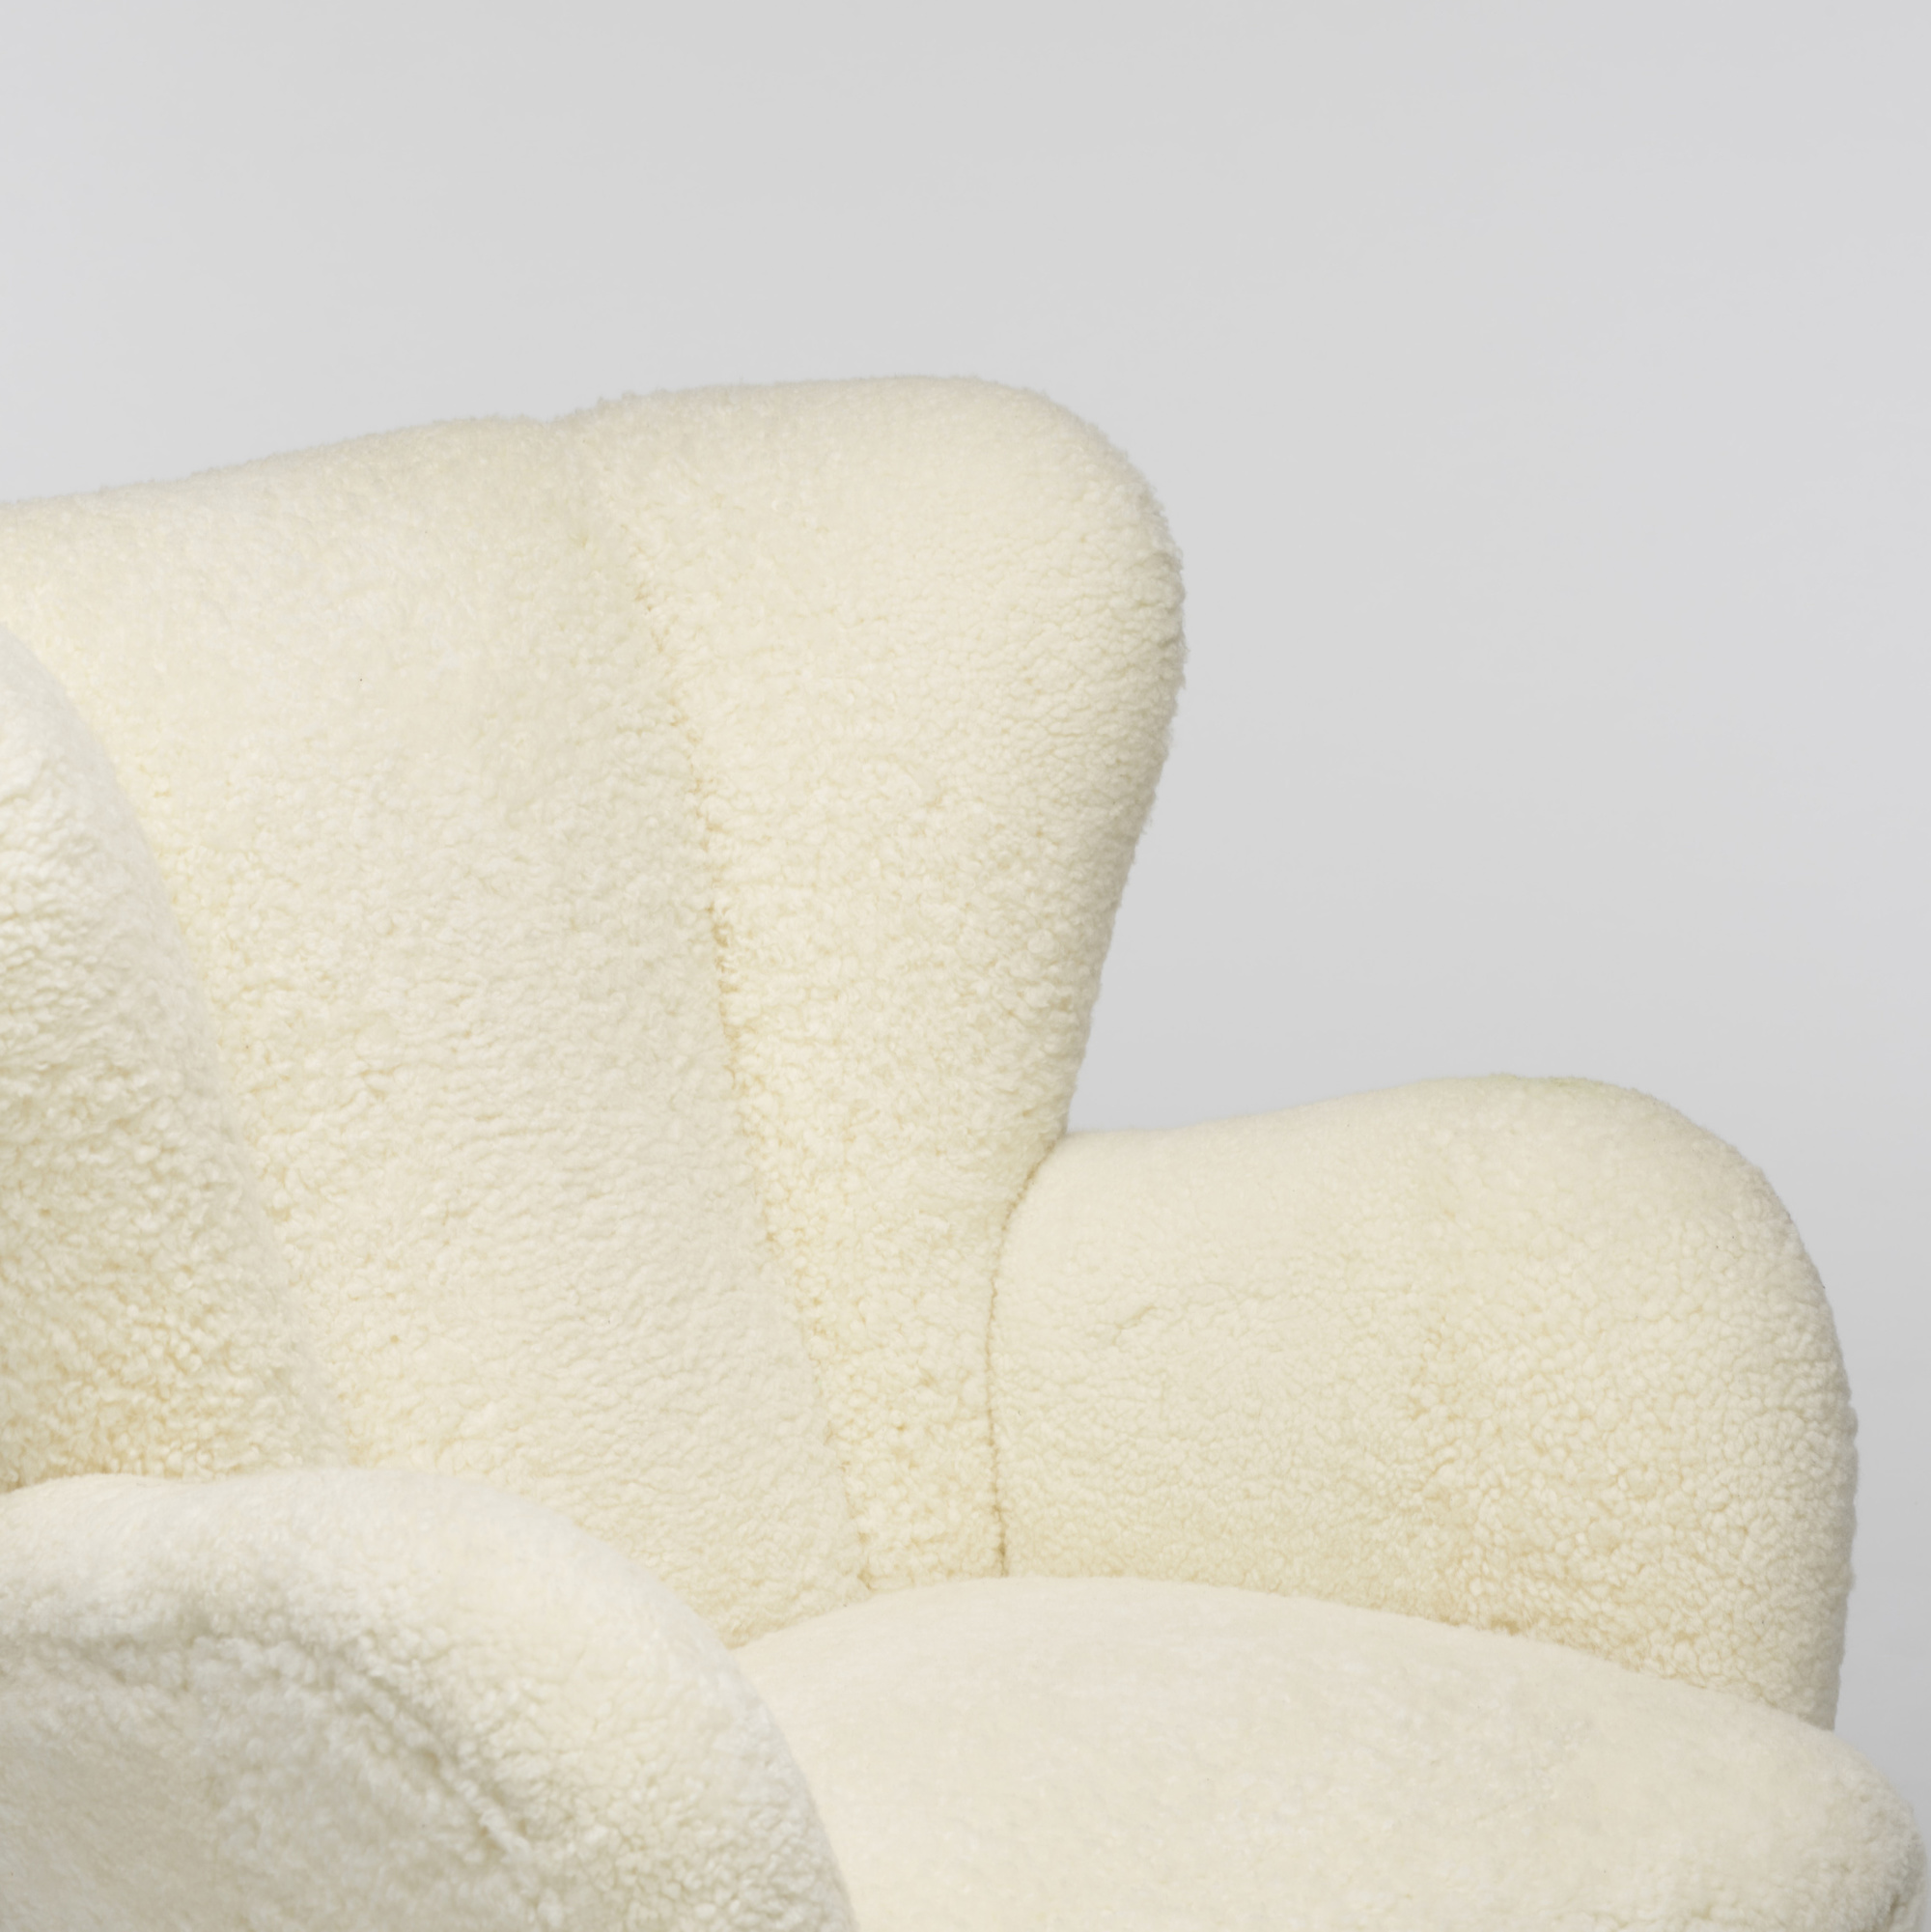 181: Flemming Lassen, attribution / lounge chair (3 of 3)